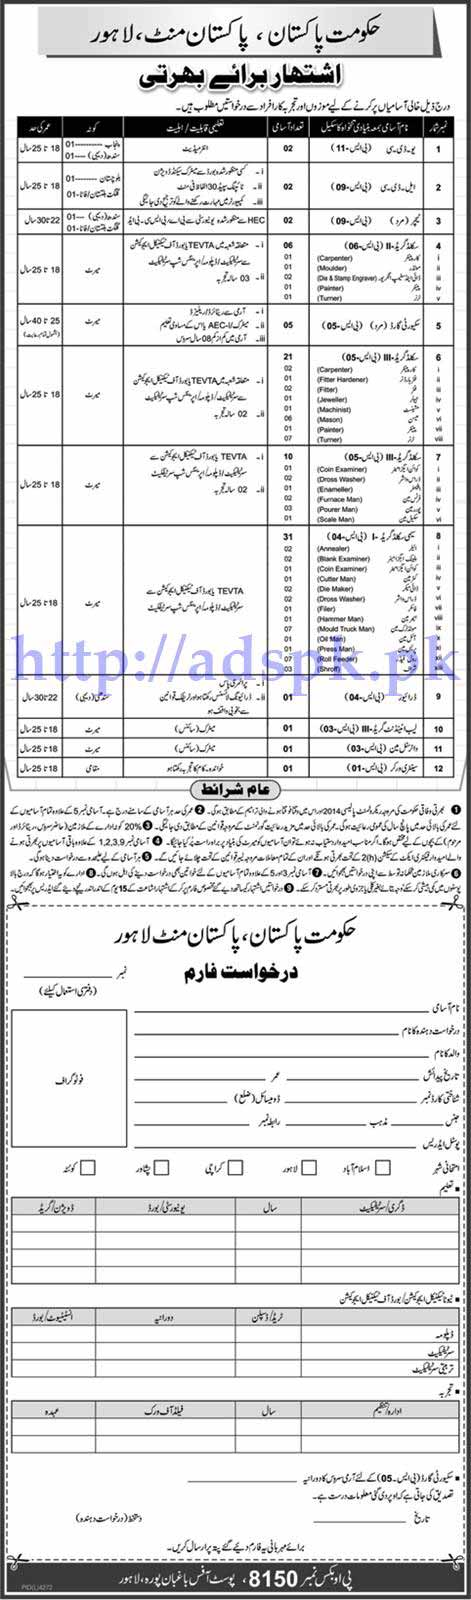 Jobs Pakistan Mint Lahore Government of Pakistan Jobs 2017 for UDC LDC Teachers and Other Technical Staff Jobs Application Form Deadline 12-06-2017 Apply Now